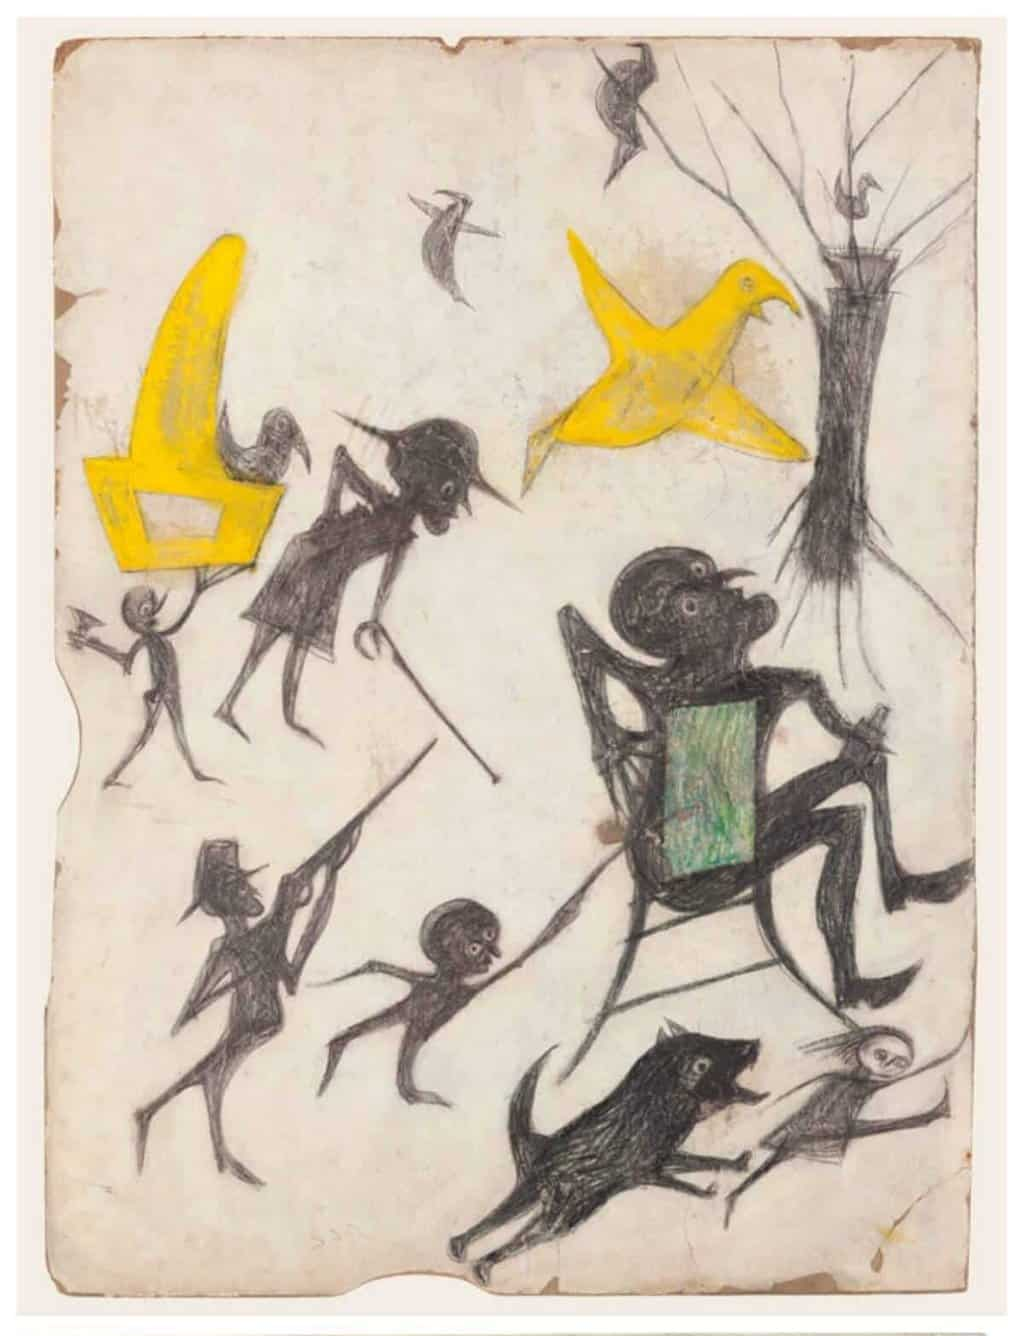 Artwork by Bill Traylor - Outsider Artists